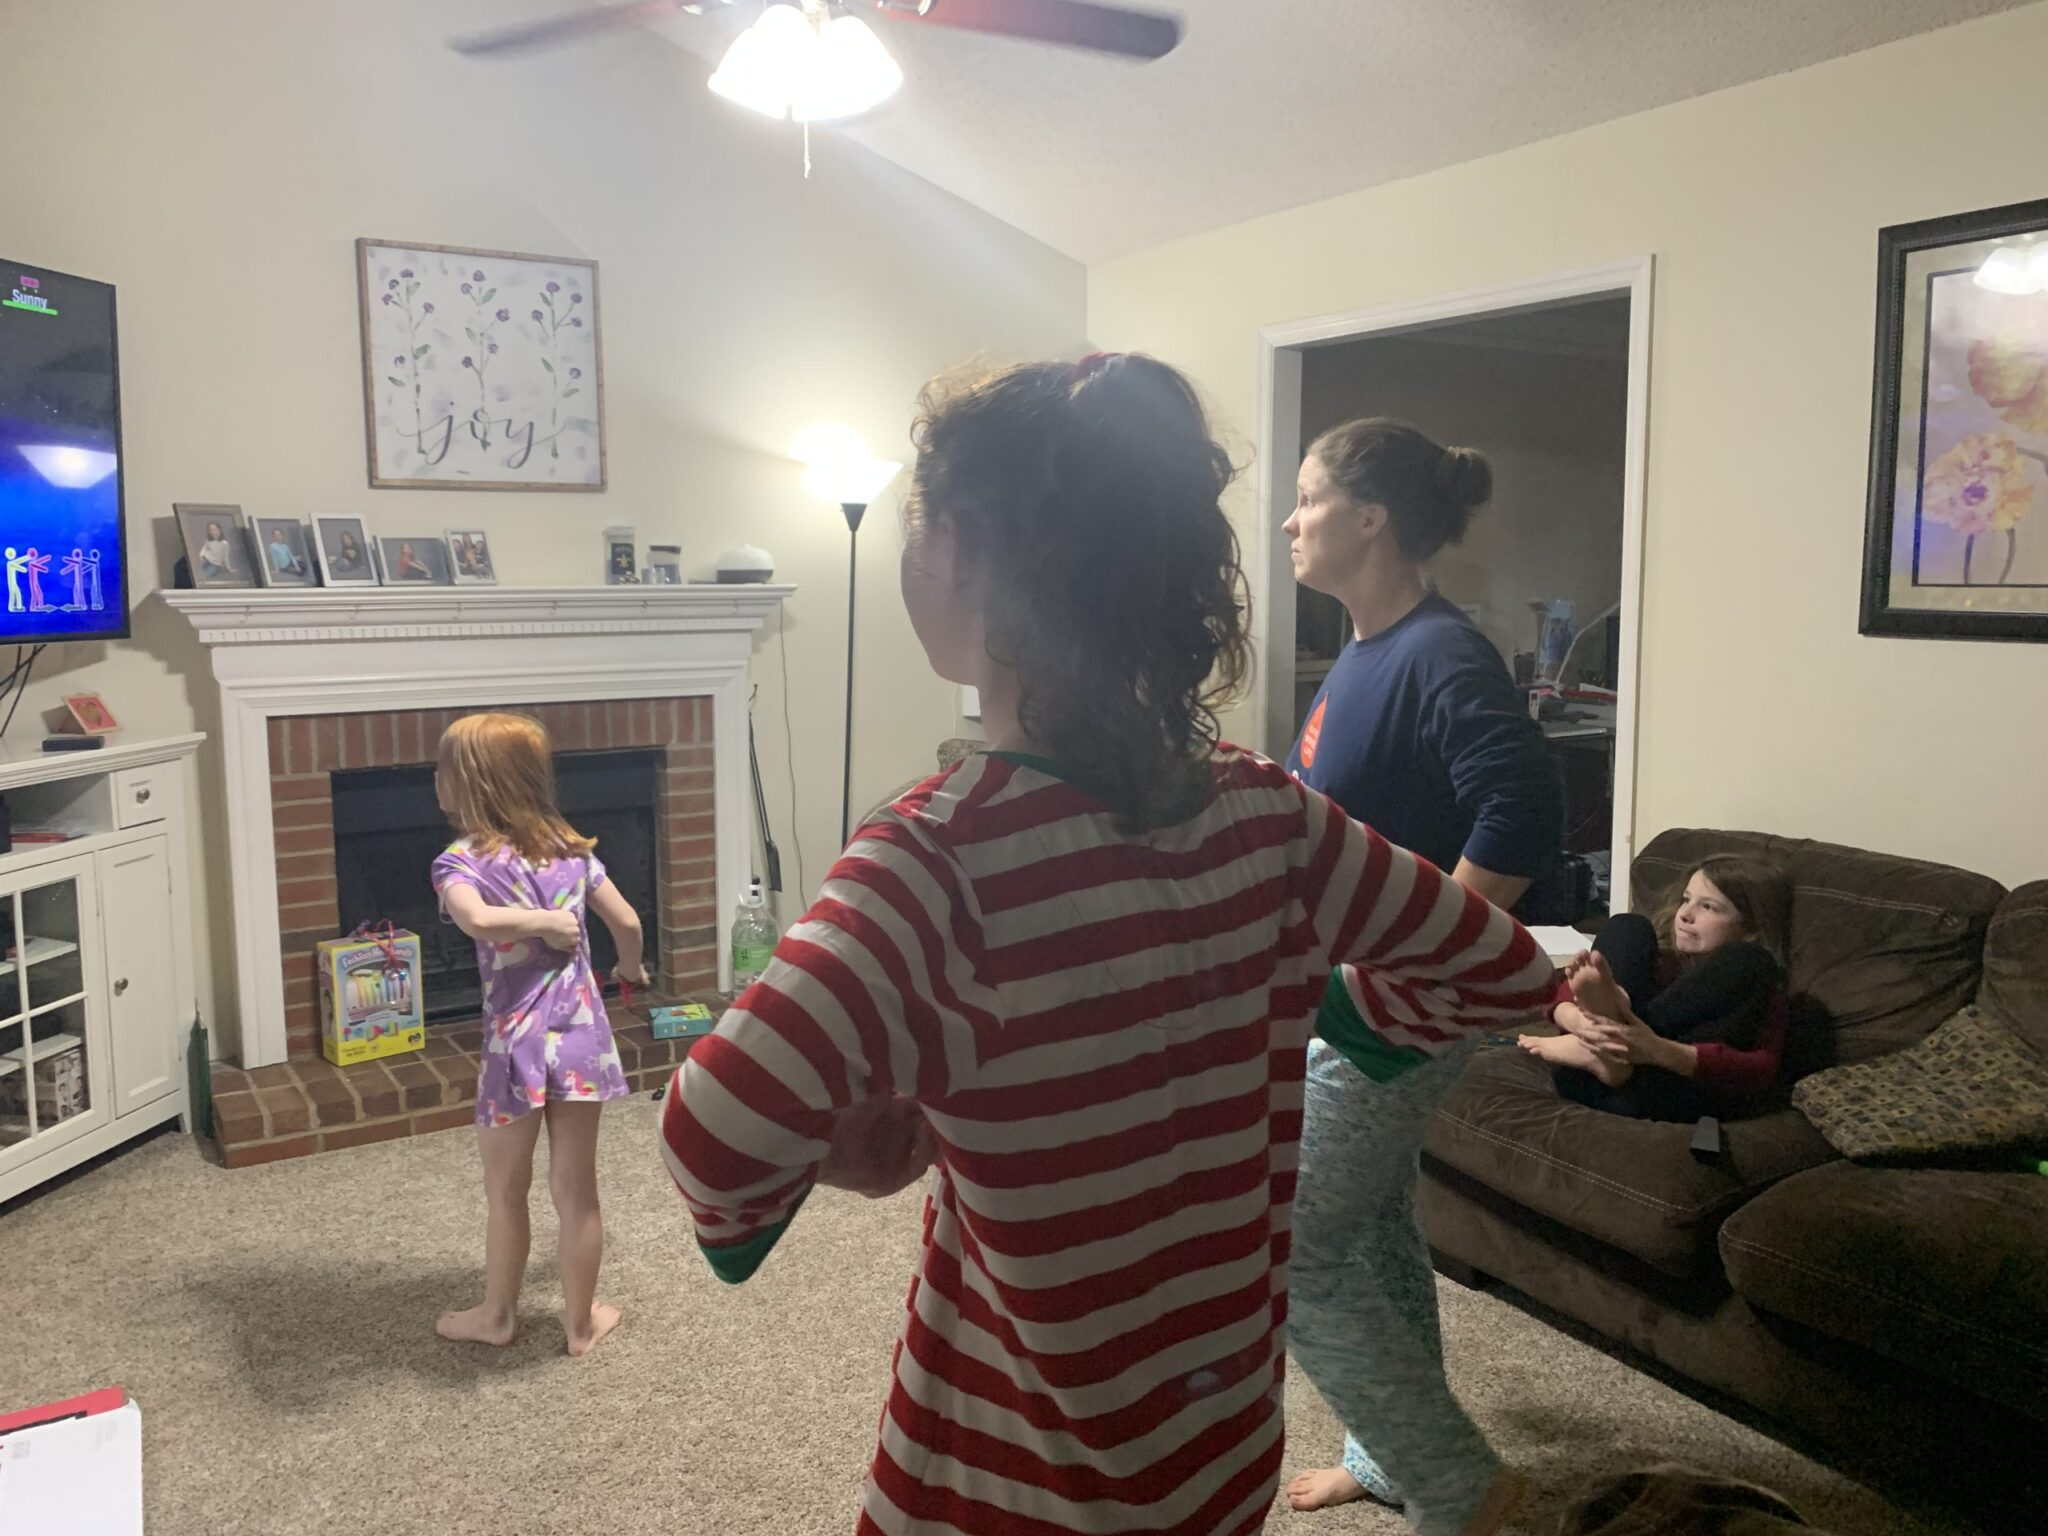 Family playing just dance 2021